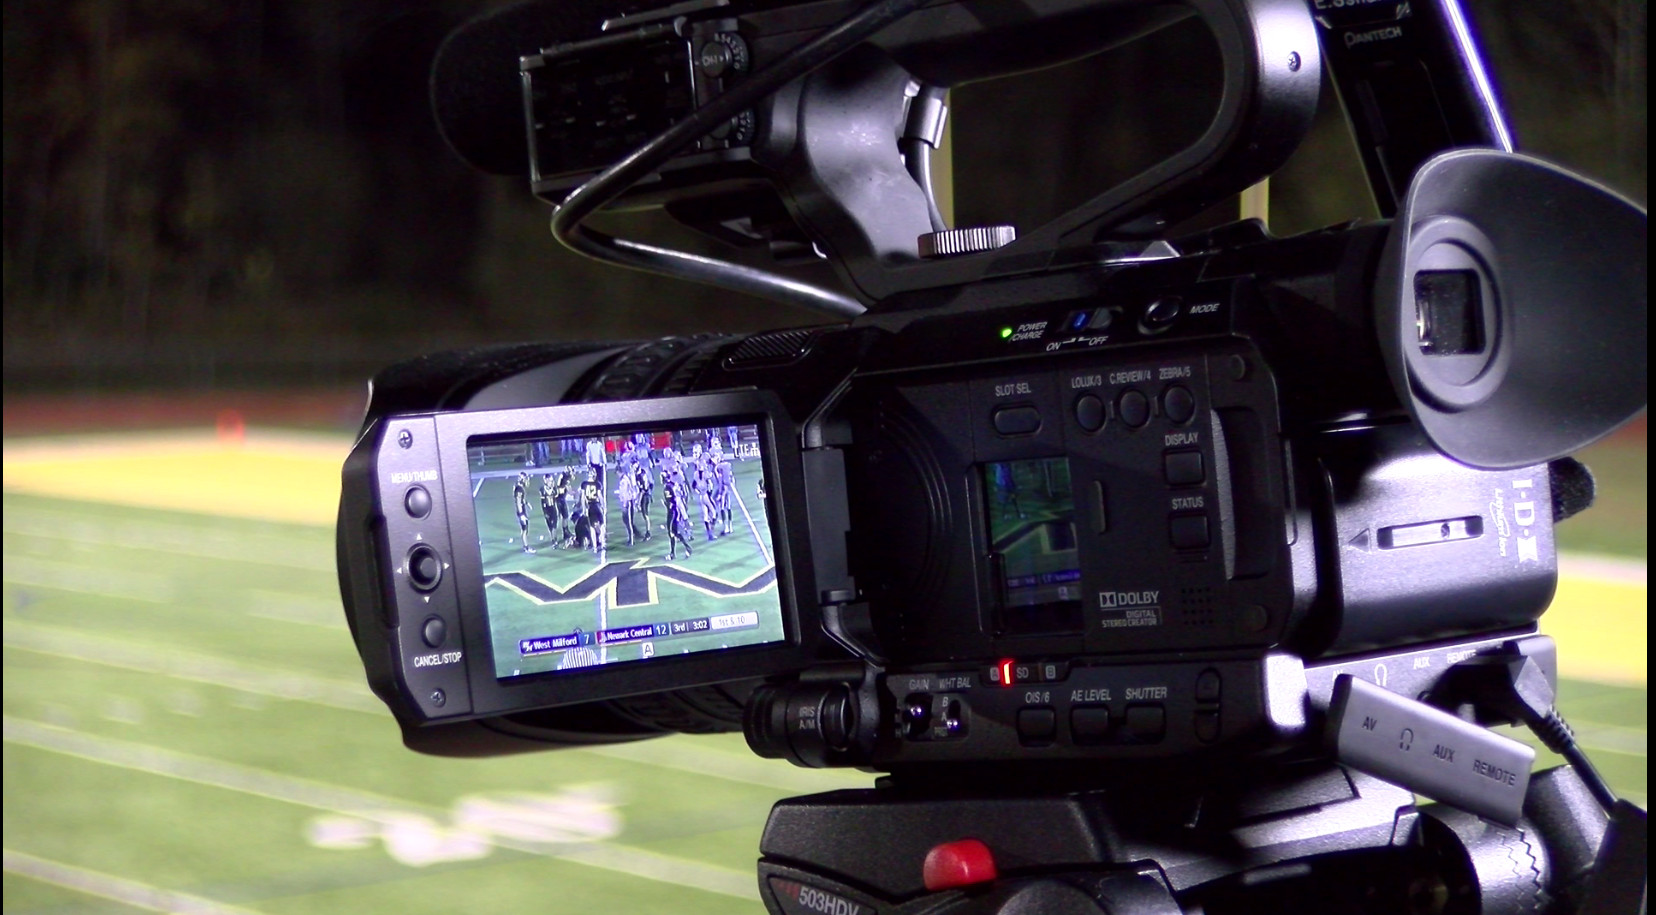 The overlay for sports coverage on JVC's GY-HM200 SP camcorder